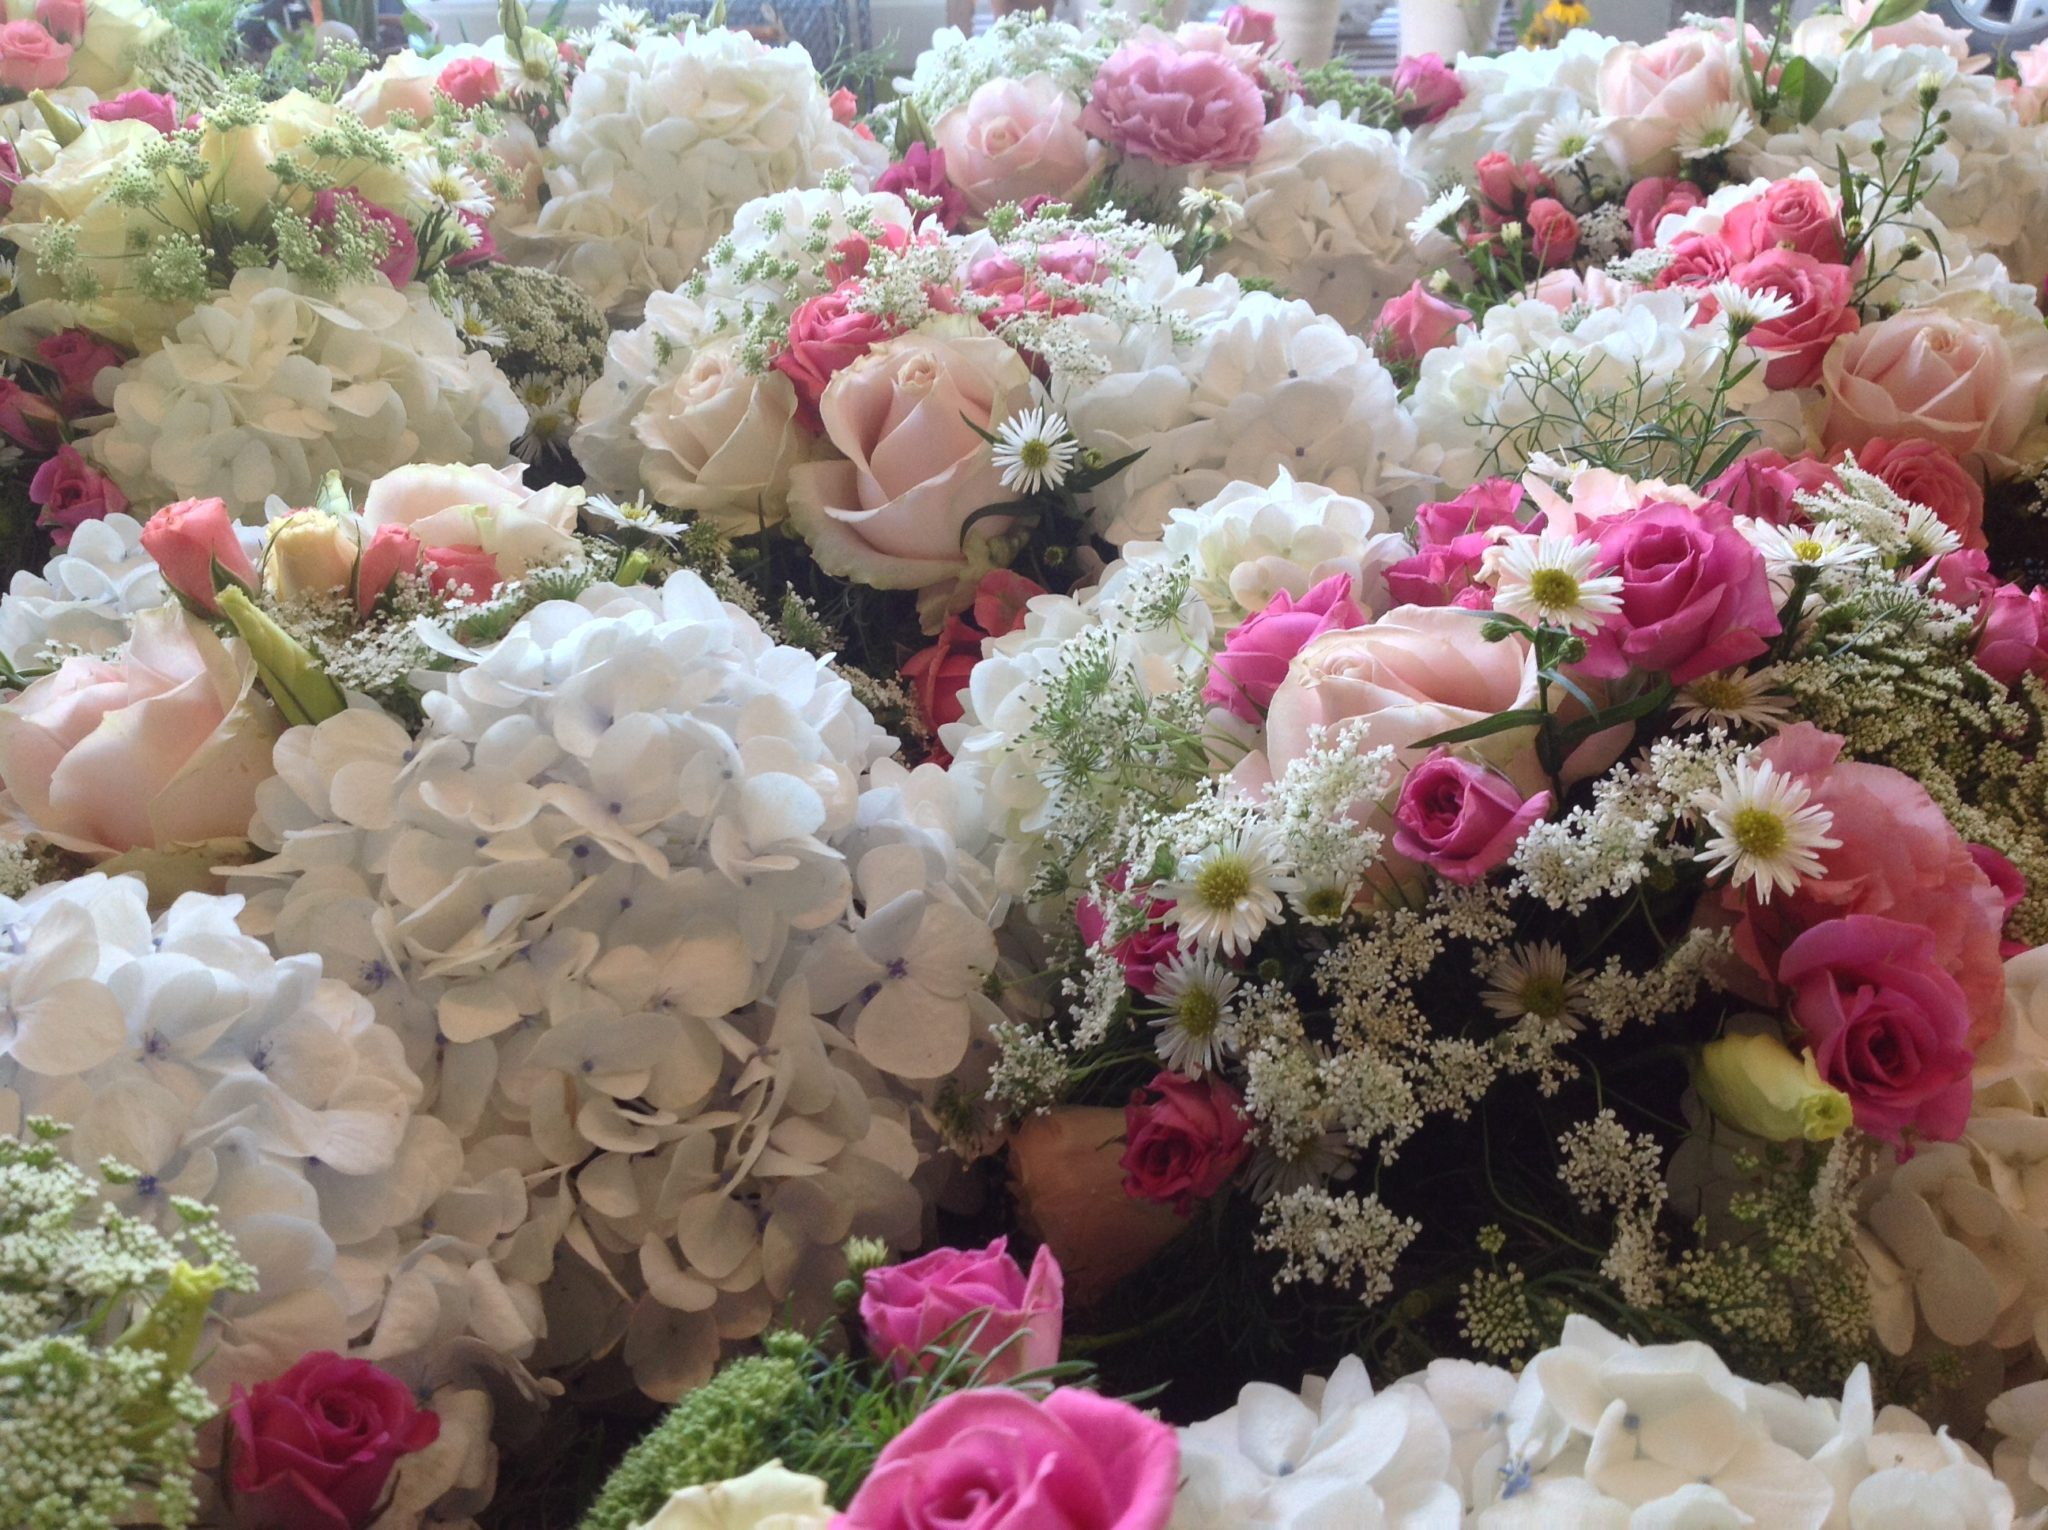 Posies ready for the wedding!